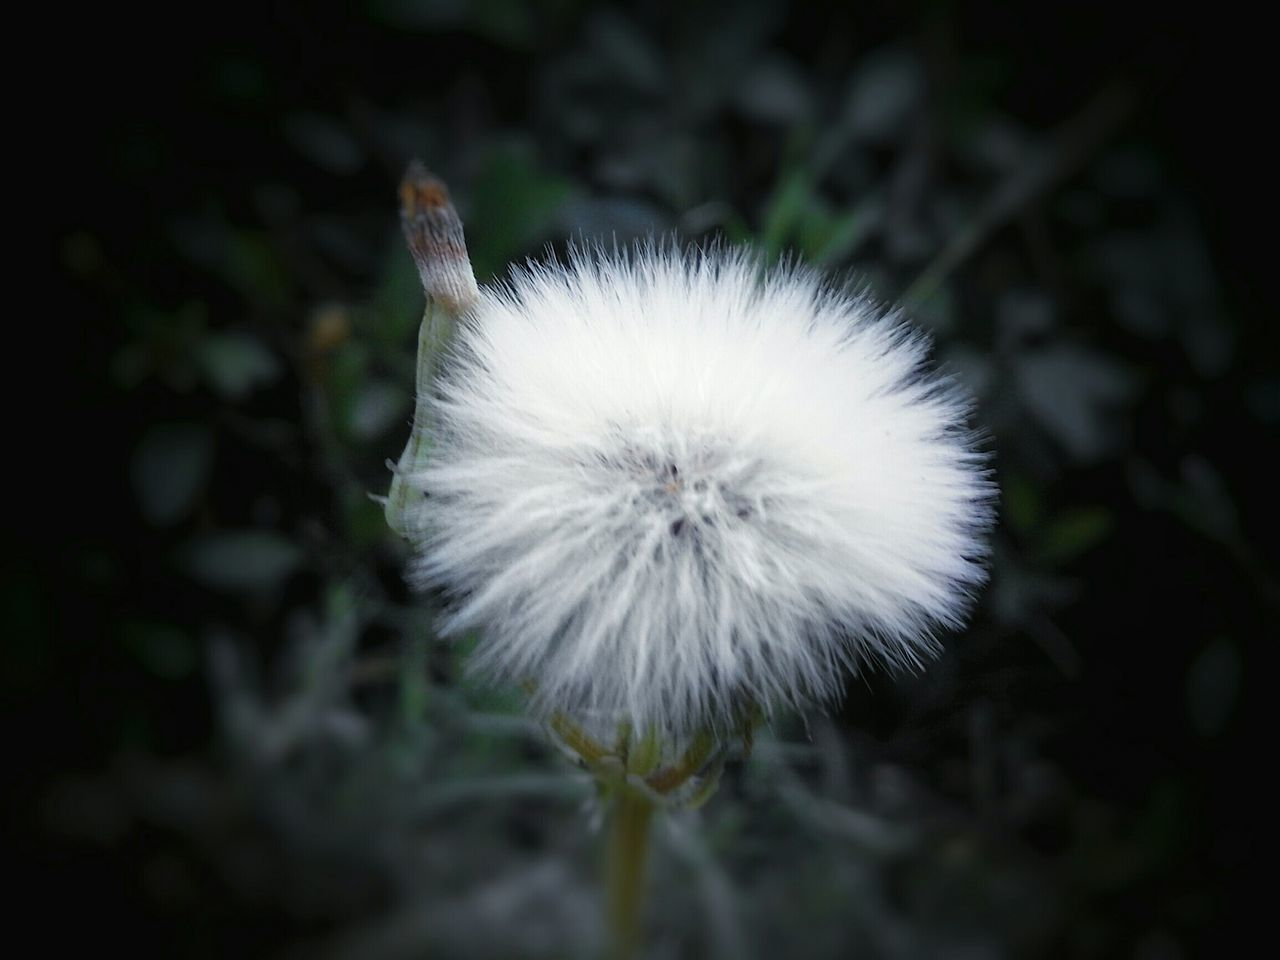 flower, white color, fragility, nature, dandelion, growth, plant, beauty in nature, flower head, softness, freshness, close-up, outdoors, no people, uncultivated, day